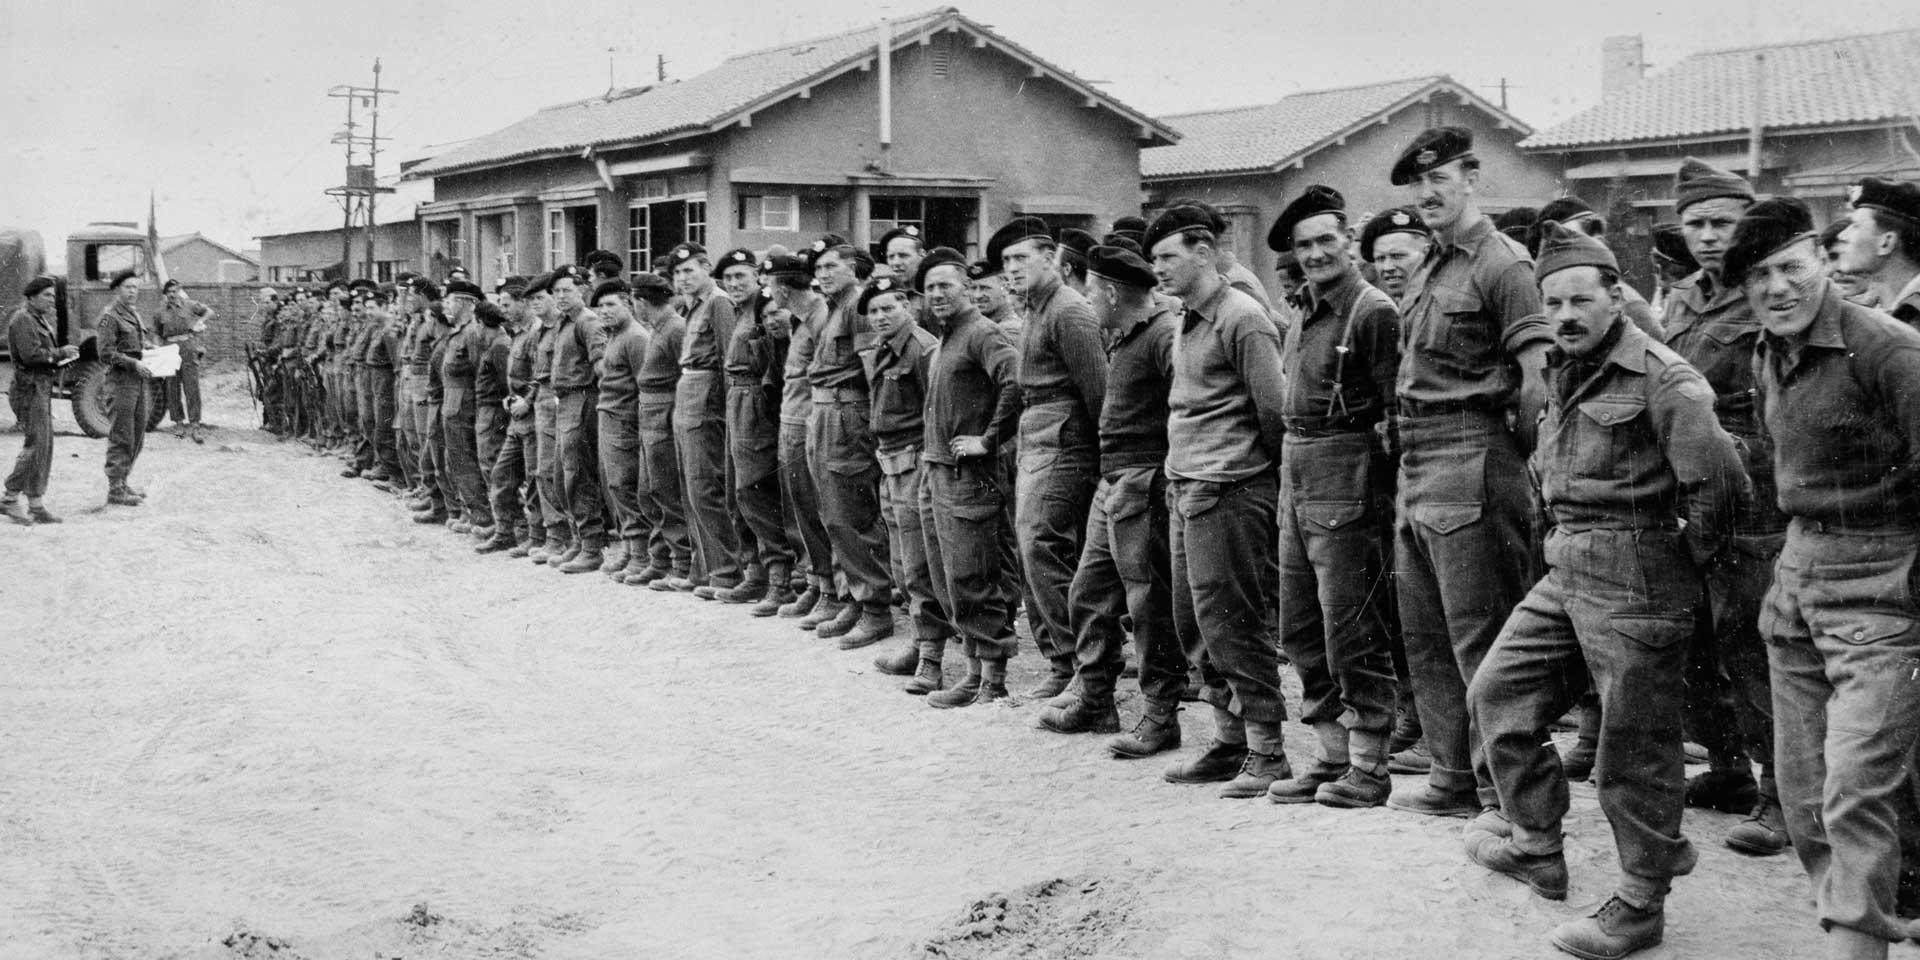 Roll call of The Gloucester Regiment's survivors of the Battle of Imjin River, 1951